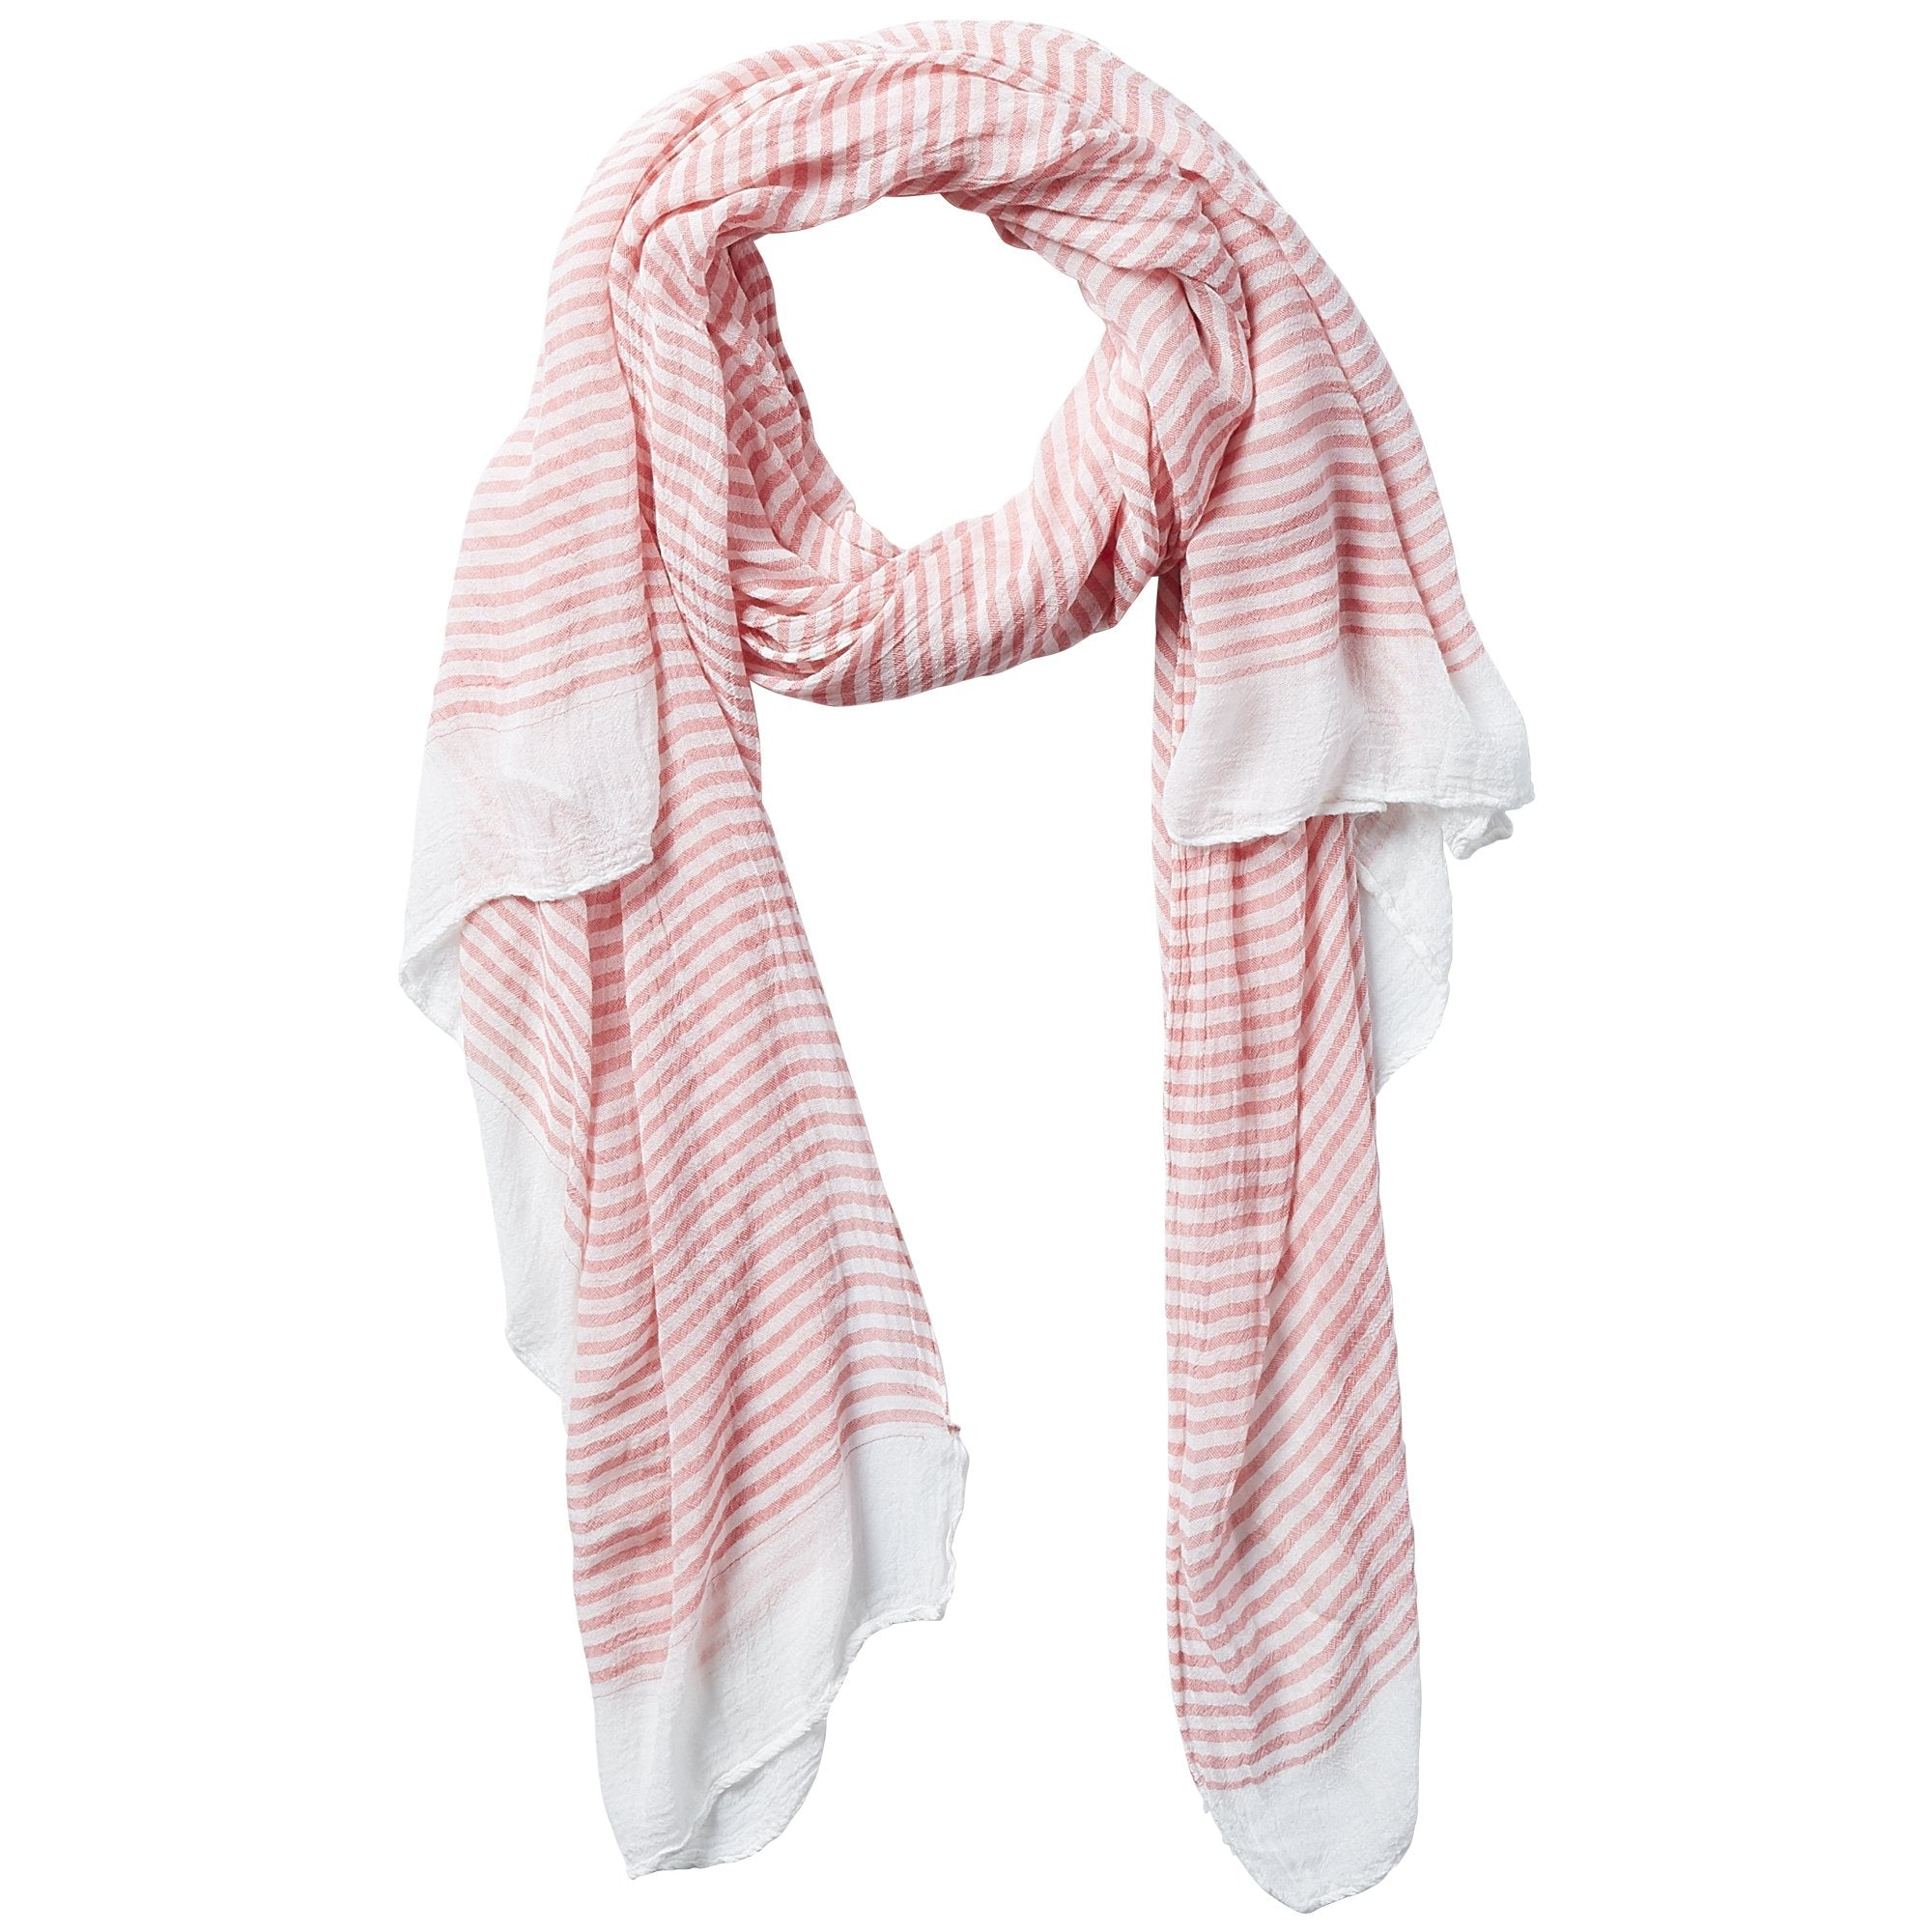 Insect Shield Scarf - Coral Tiny Stripe